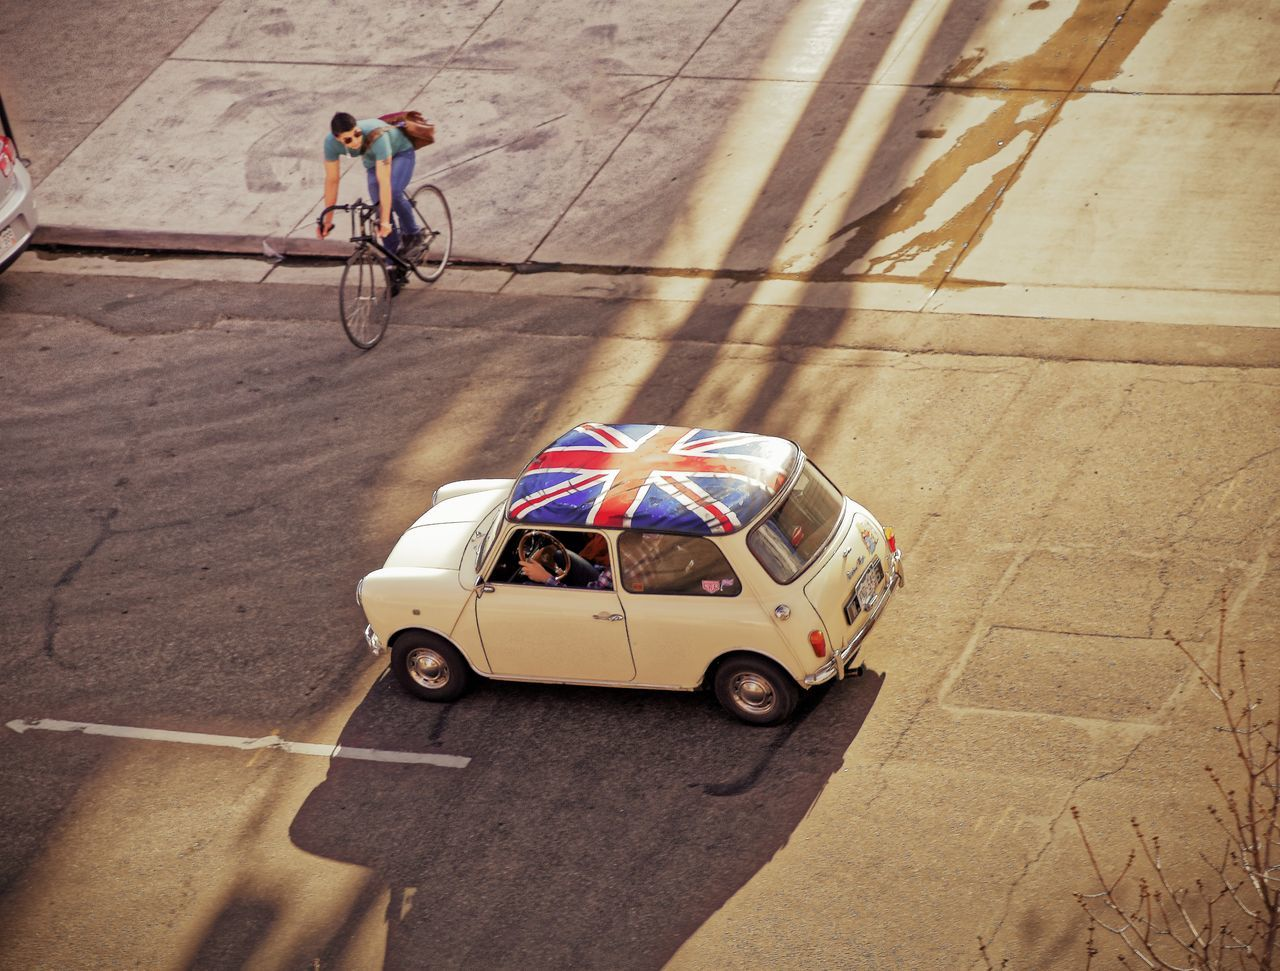 Travel on the street. Mini and bike. Automobile Bicycle Bike Vs Car British Car City Cycling Cyclist Day Driving Flying High High Angle View Mini Cooper Outdoors People Road Shadows Street Streetphotography Transportation Union Jack Urban